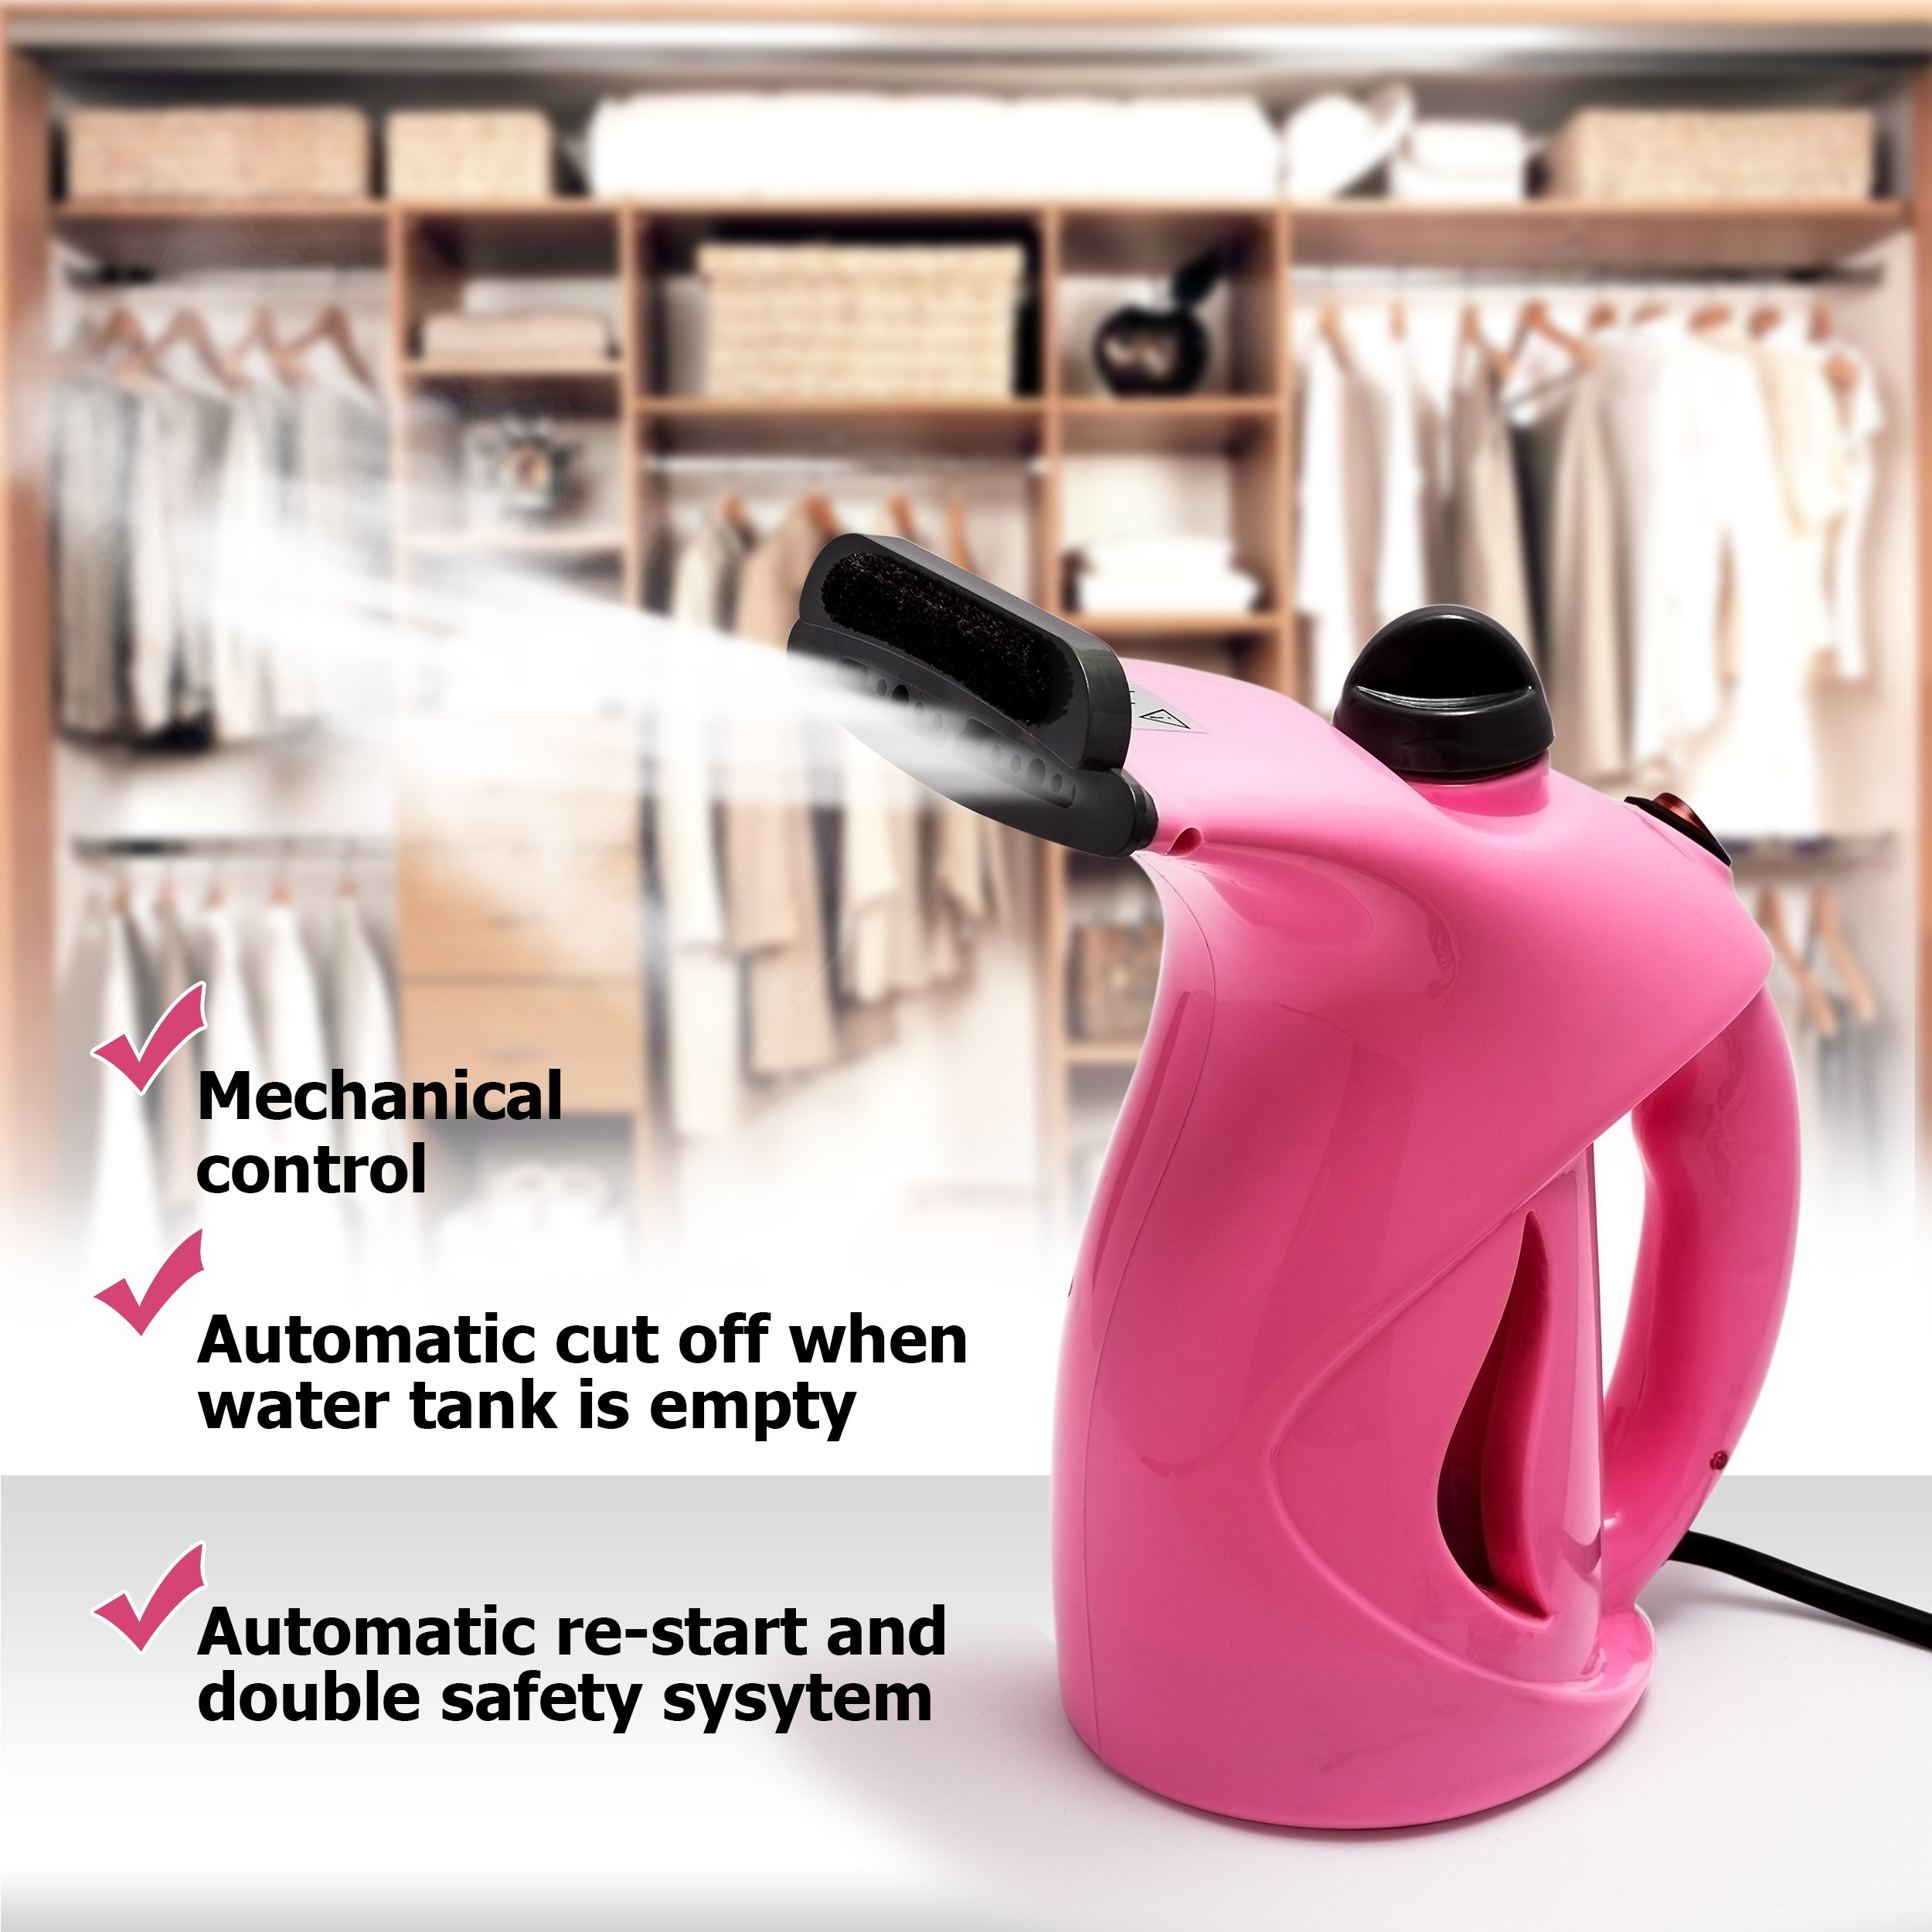 Business100 Portable Steamer, 200ML Portable Garment Steamer, Steamer for Clothes, Heat-up Premium Fabric Steam Cleaner, Safe, Lightweight & Perfect Clothing Steamer for Travel Home by Business100 (Image #8)